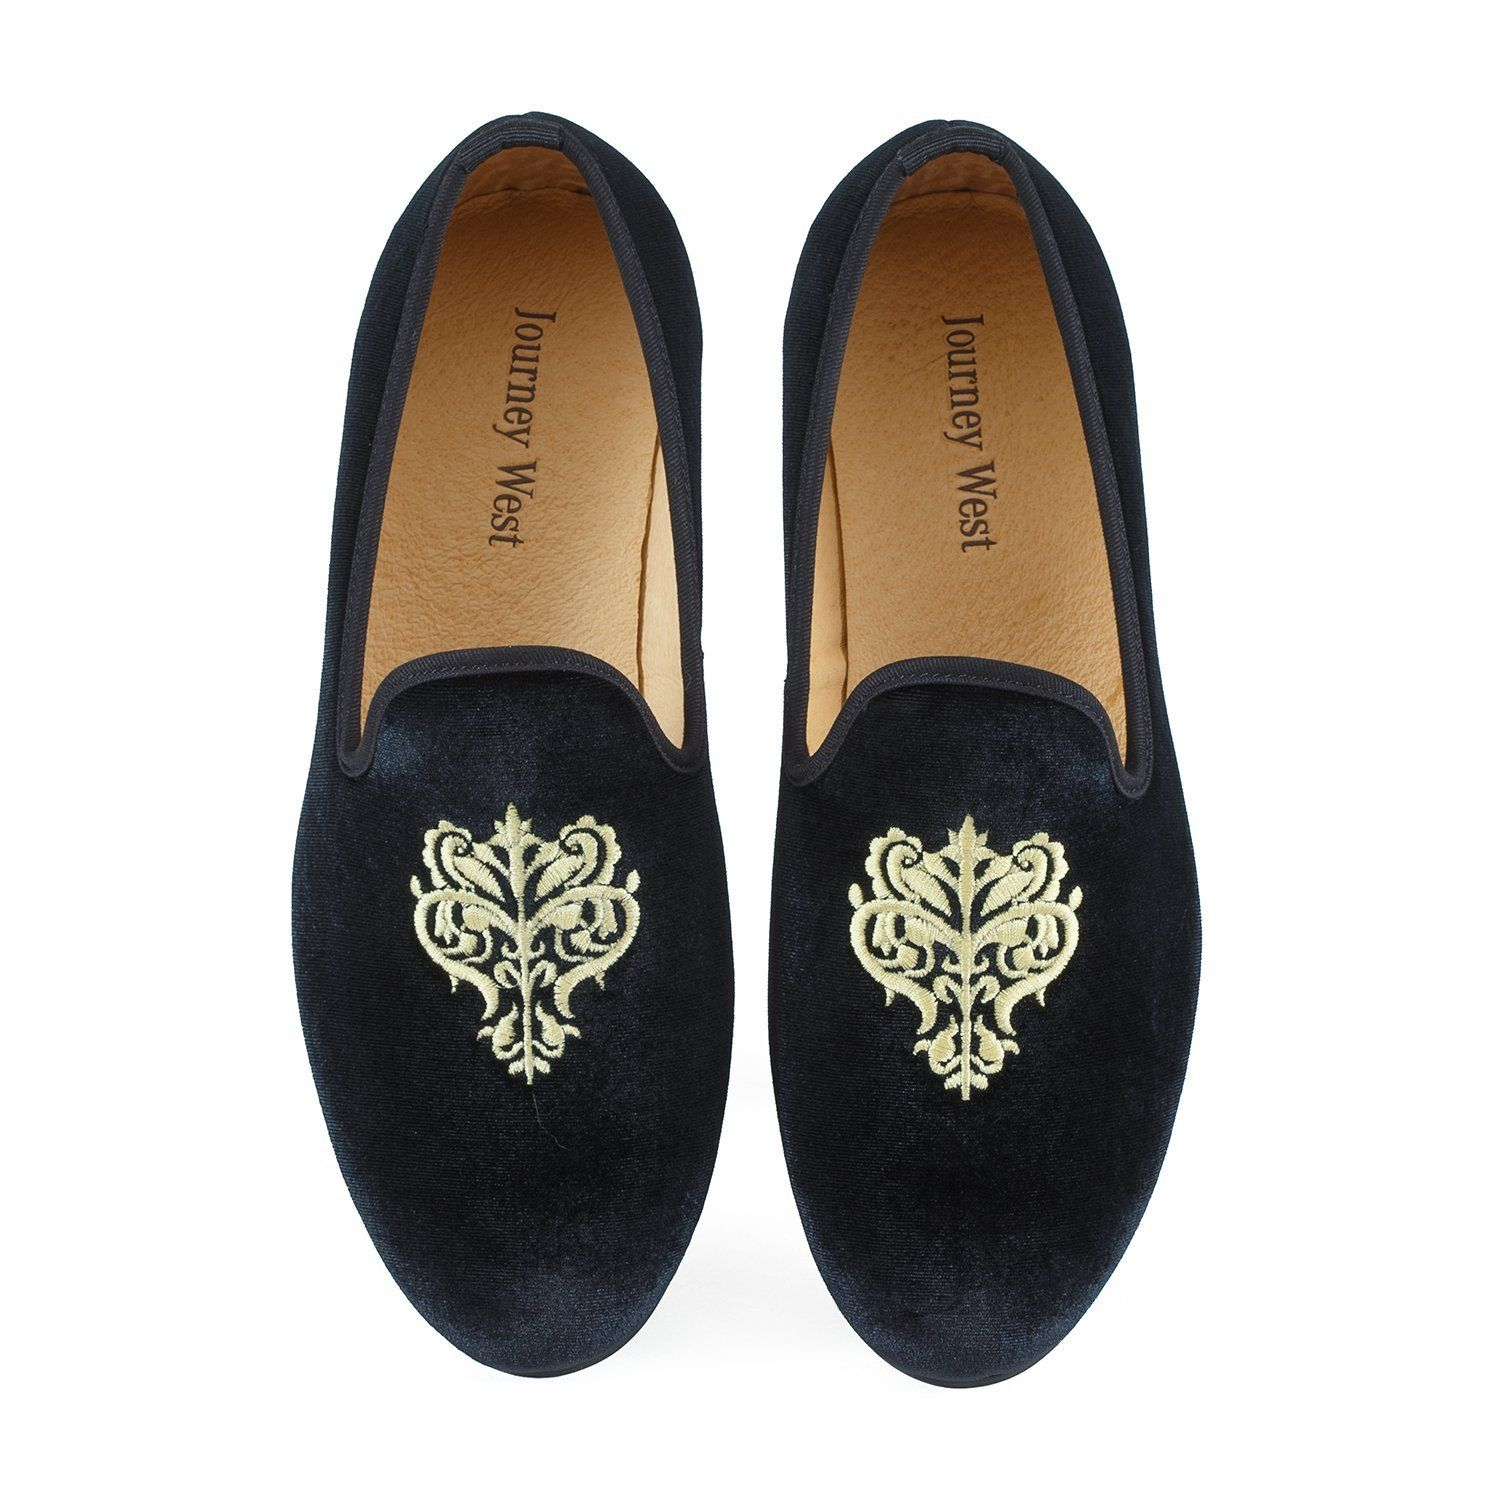 Vintage Handmade Leather Ethnic Embroidery Slippers Shoes Classic